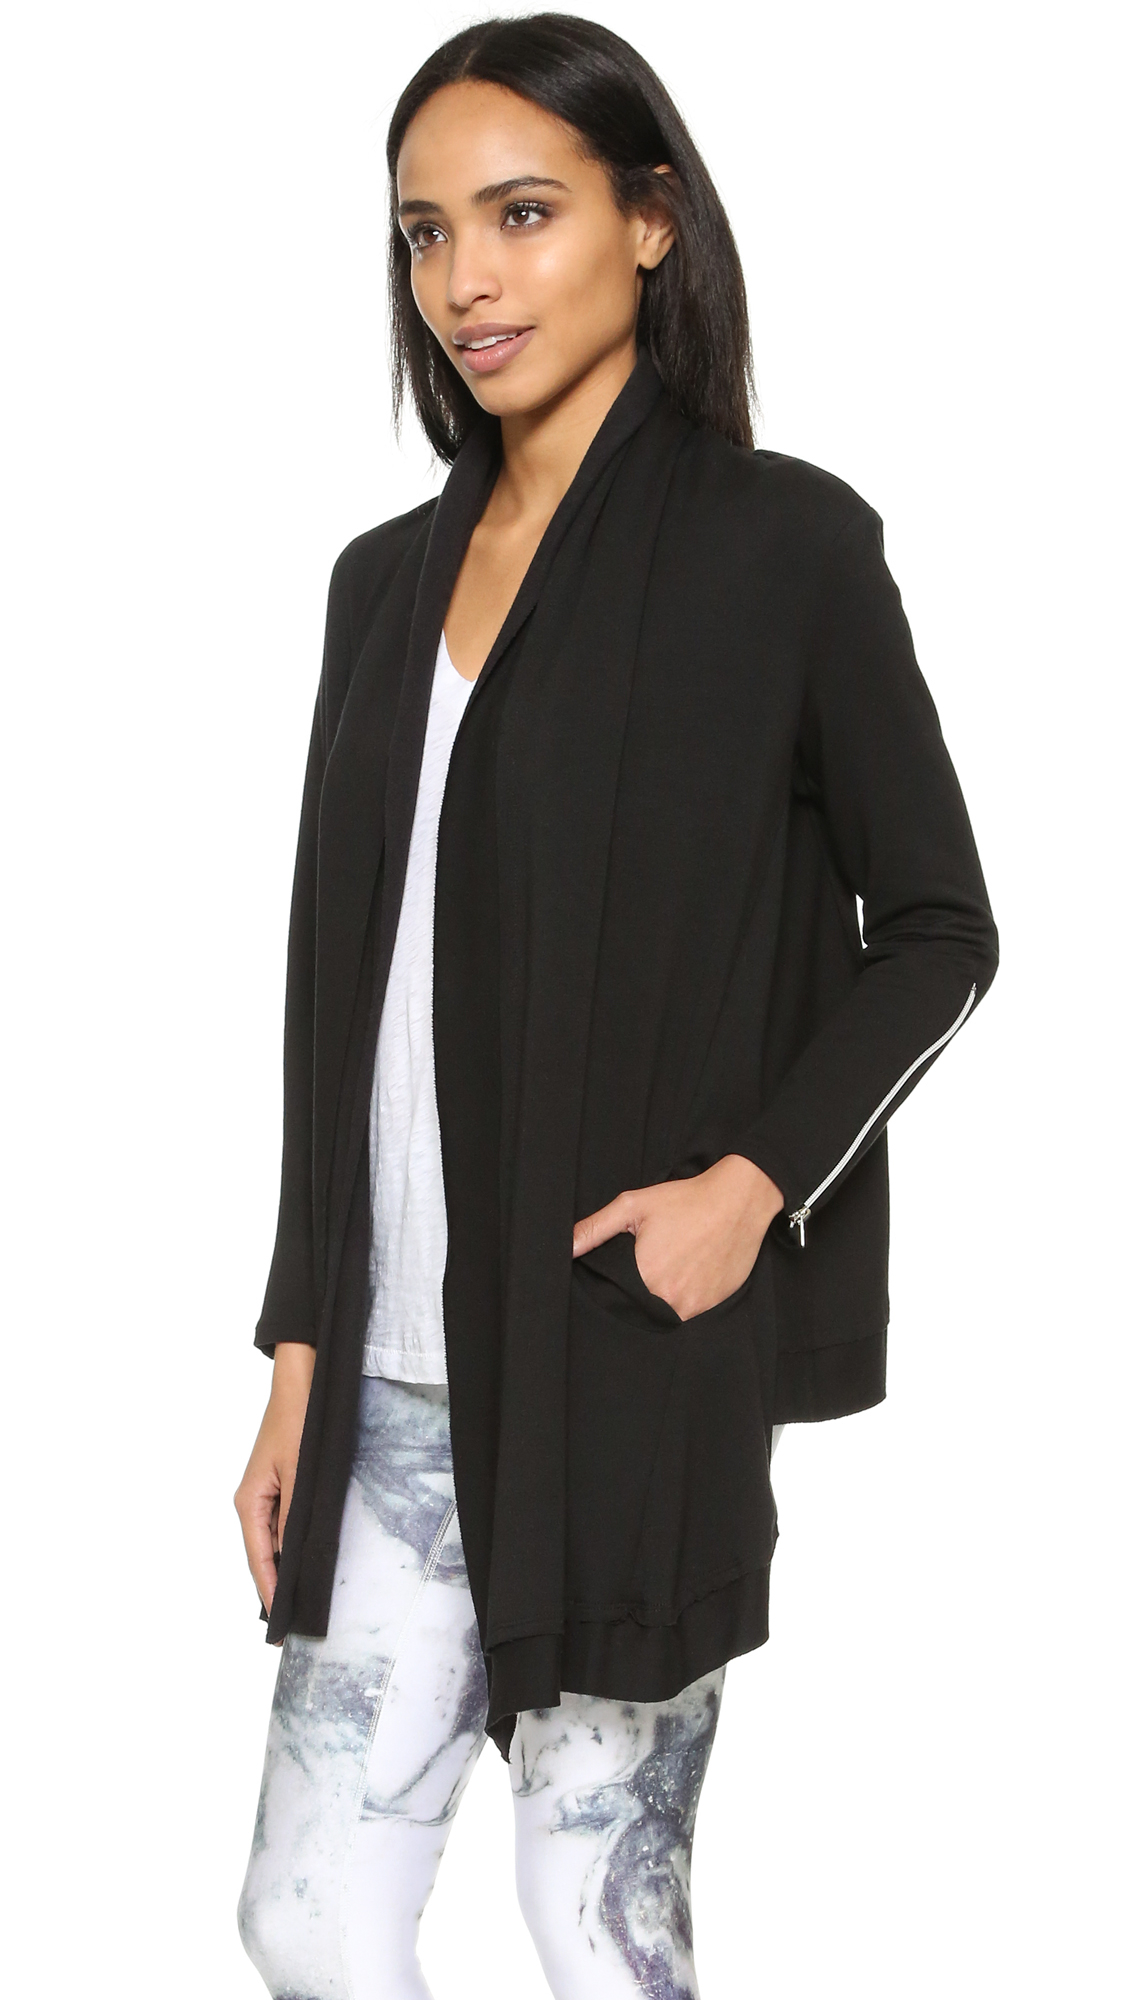 uk terry black drape cardigan fashion n cardigans anybody jumpers qvc c french front drapes